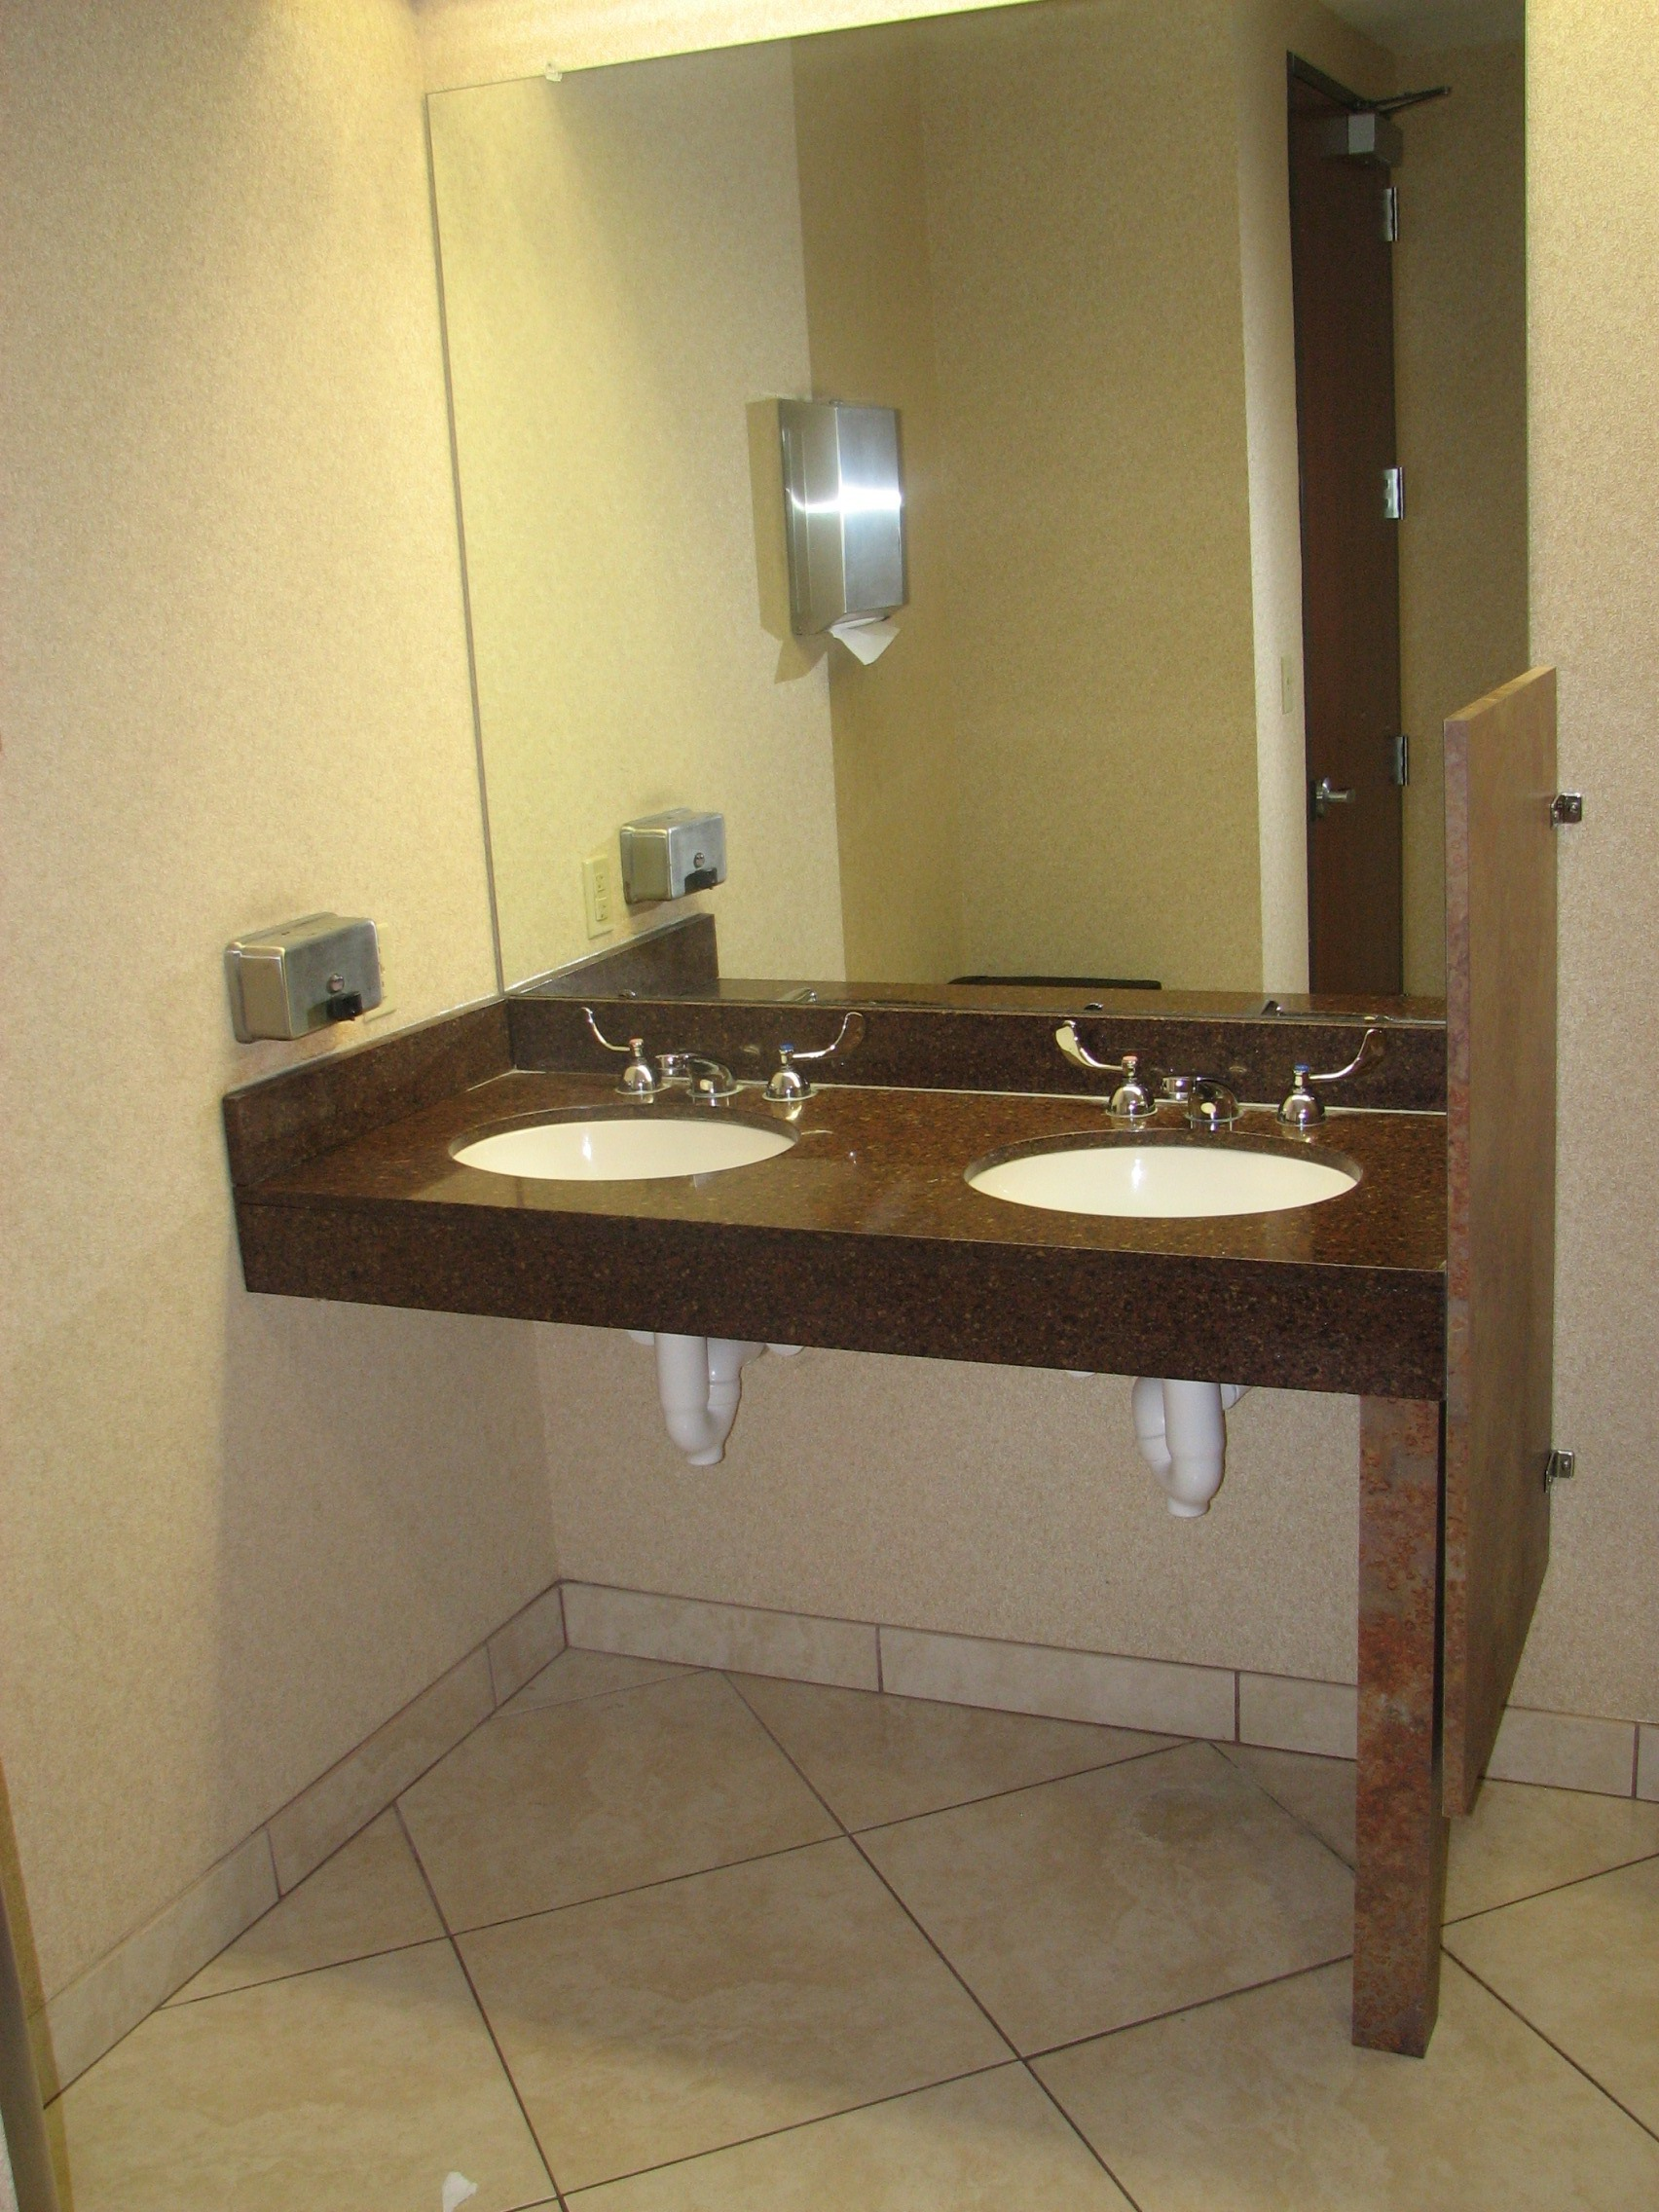 Excellent Lowes Bathtub Drain Stopper Tall All Glass Bathroom Mirrors Square Build Your Own Bathroom Vanity Bathroom Water Closet Design Old Tile Floor Bathroom Cost ColouredWash Basin Designs For Small Bathrooms In India Commercial Bathroom Design Ideas. Restroom Design Ideas Zampco ..